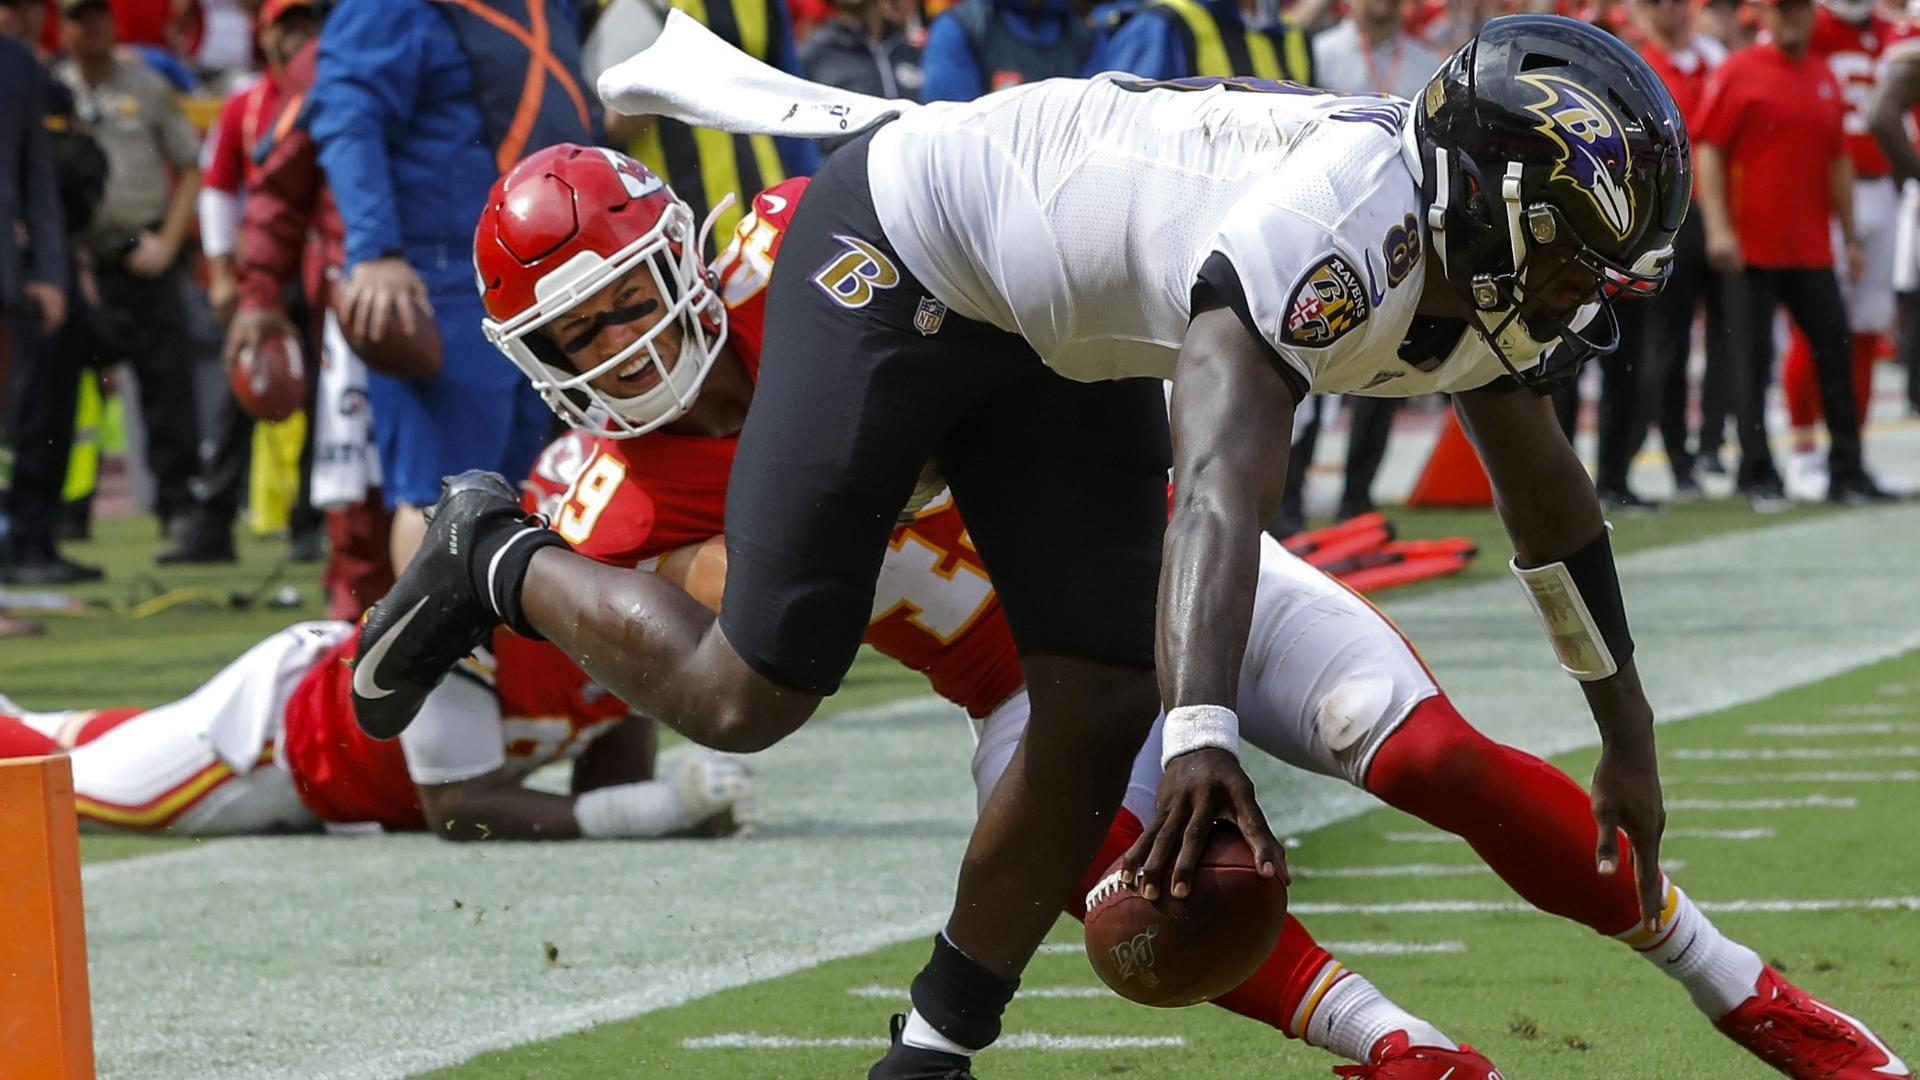 Jackson shows off video game moves in loss to Chiefs